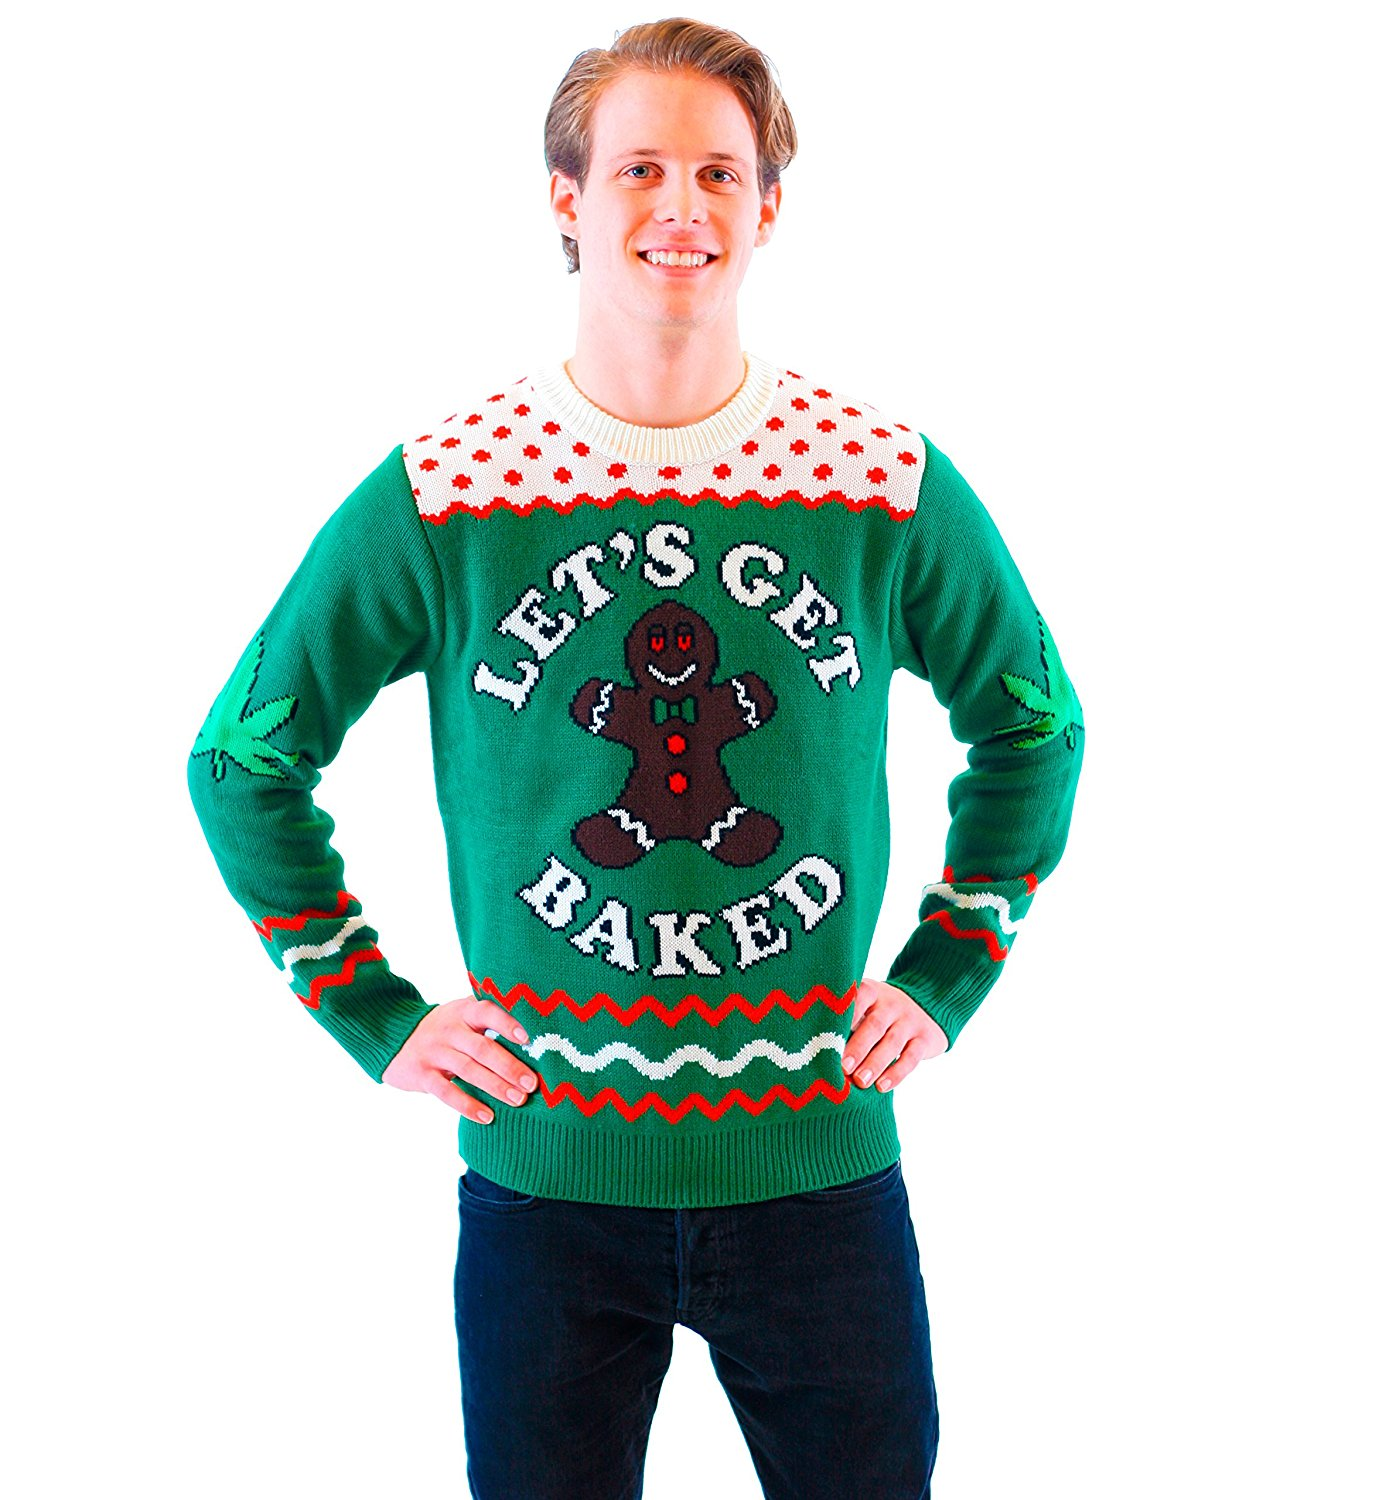 Joker Christmas Sweater.Let S Get Baked Happy Gingerbread Green Ugly Christmas Sweater